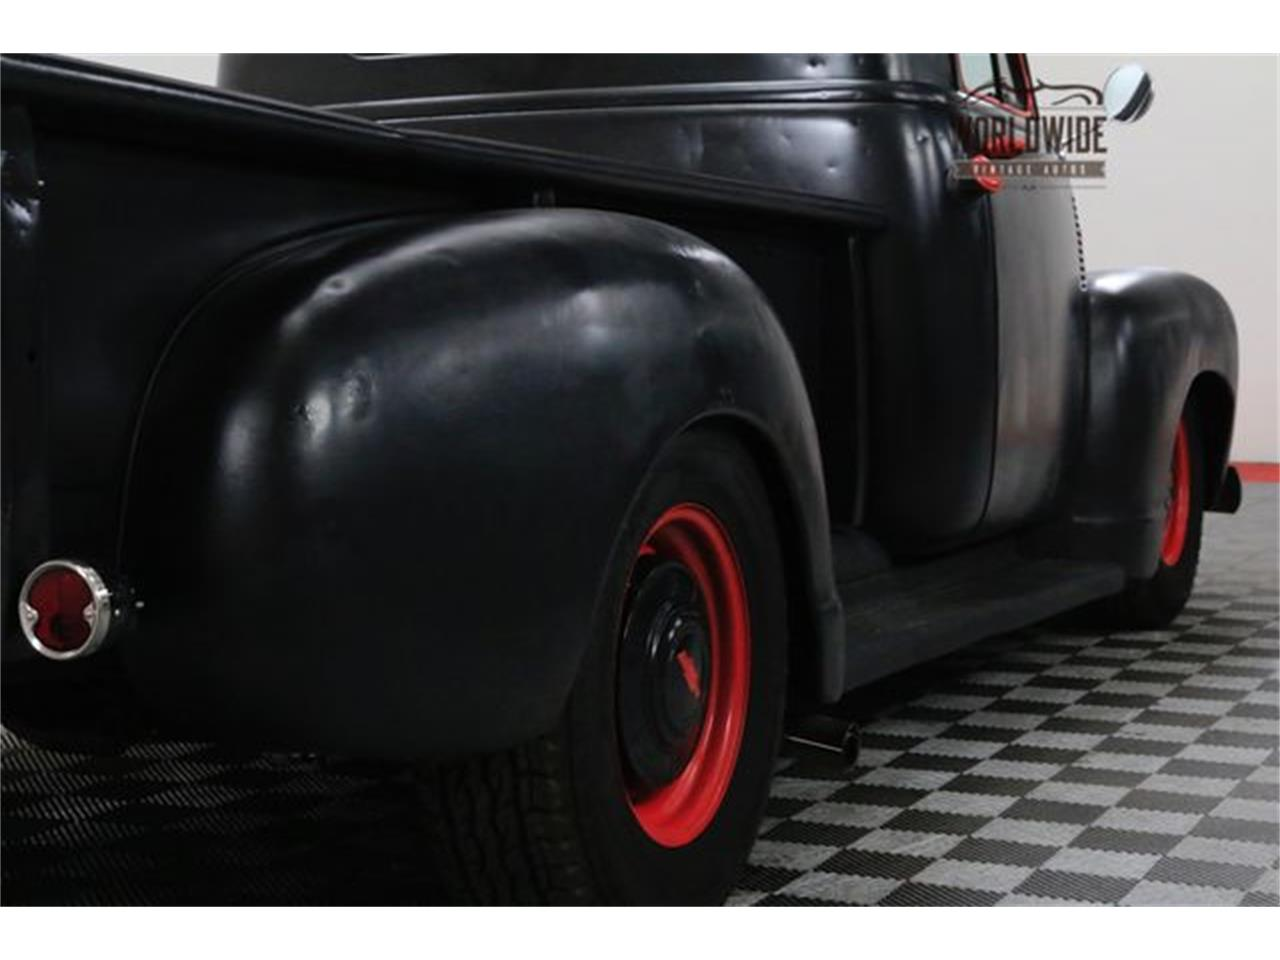 Large Picture of '54 Chevrolet 3600 - $21,900.00 Offered by Worldwide Vintage Autos - MD0W